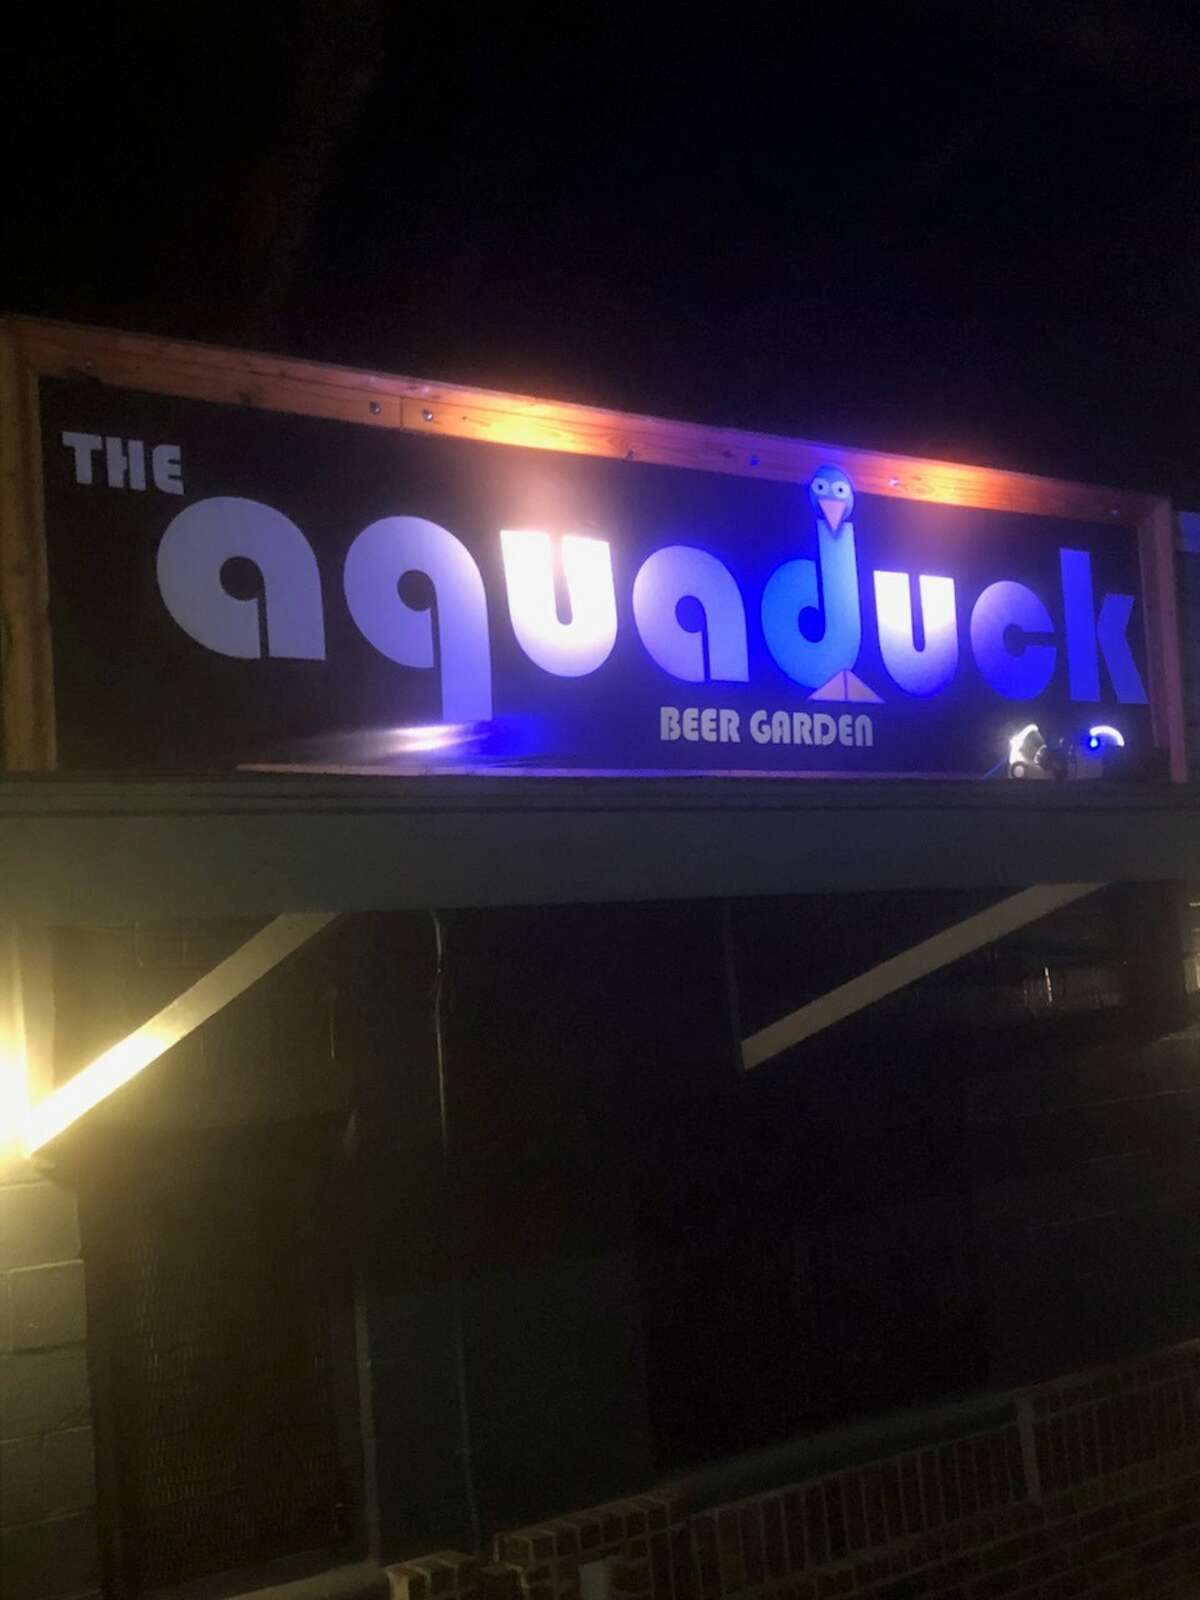 """1st Annual Cowboy Breakfast at The Aquaduck 9 a.m. 9214 Espada Road """"You talk, we listen. You want us open for the Cowboy Breakfast and PARTY ALL DAY LONG, well let's do it. Drink specials, live music, games, outdoors & fires, food trucks, community and FUN FUN FUN!"""""""